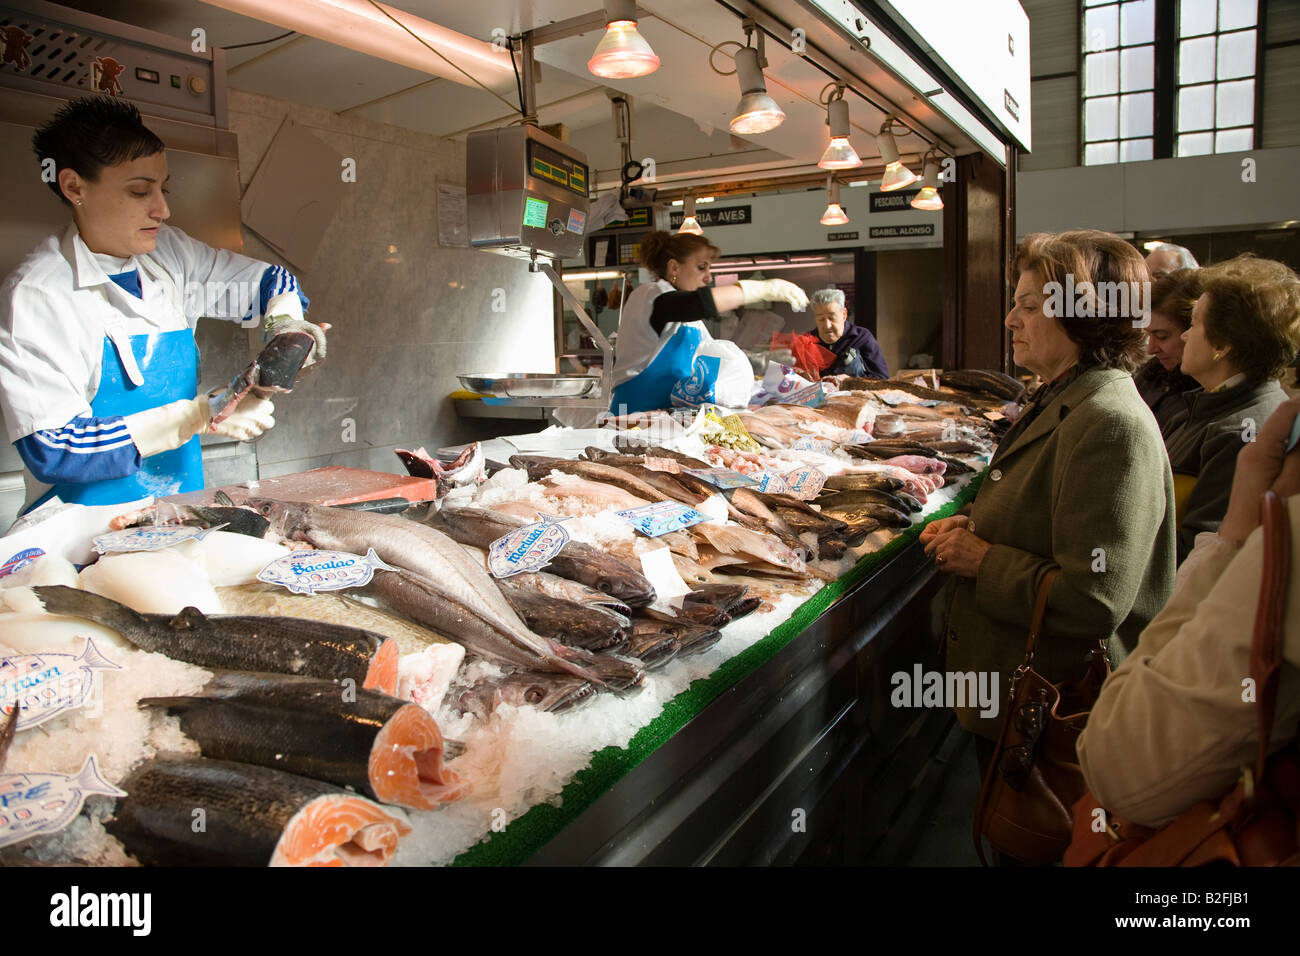 SPAIN Salamanca Women and men shop at fish monger at indoor market vendor show fresh fish to customer - Stock Image